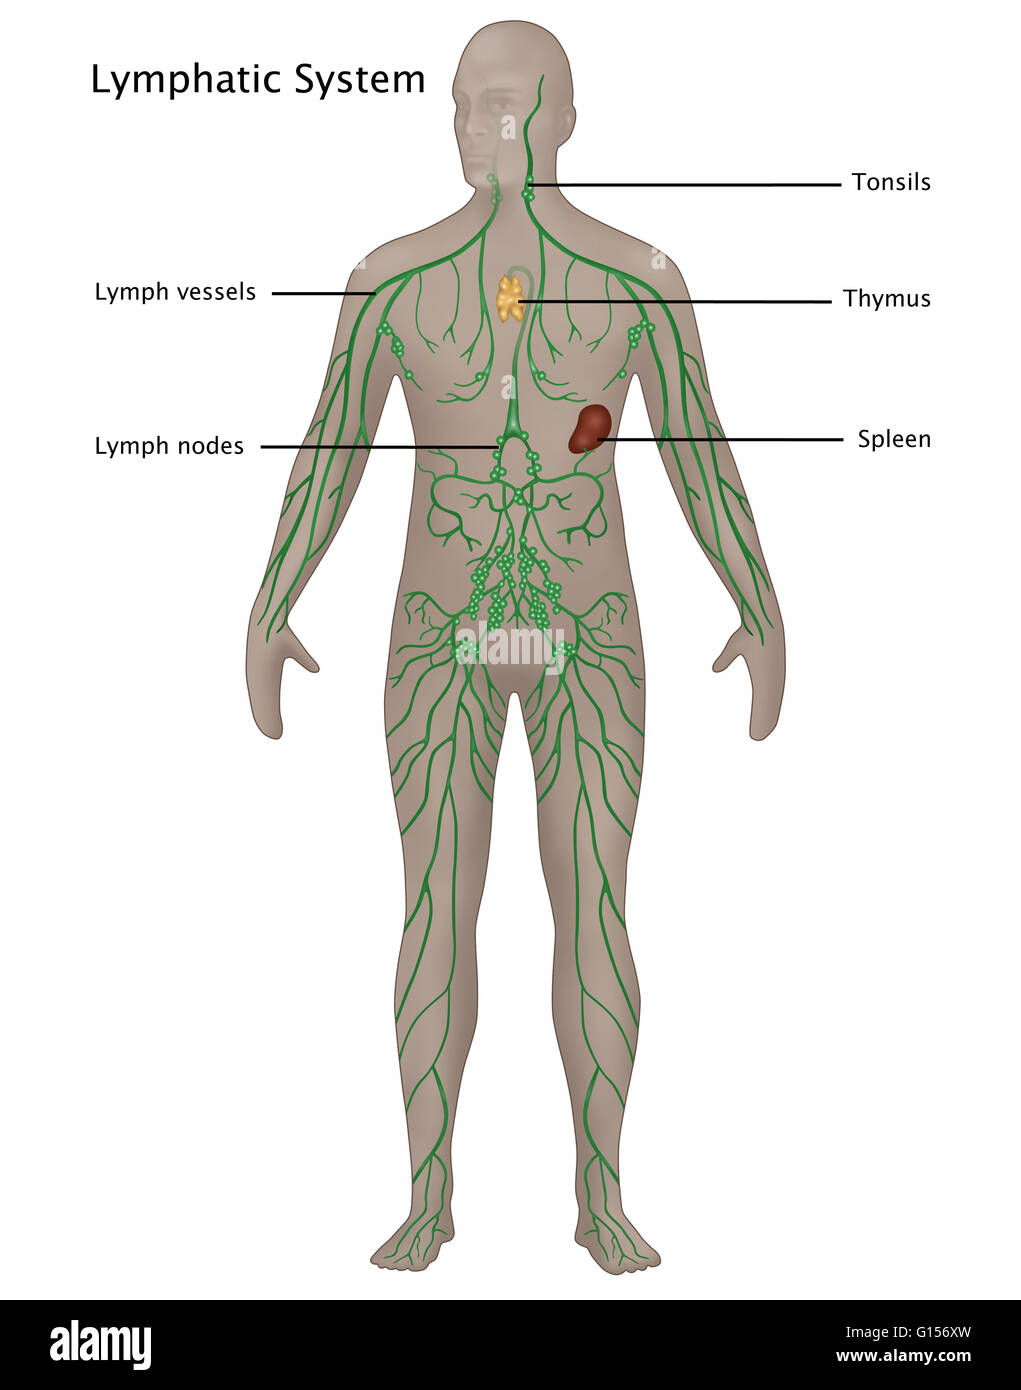 Illustration of the lymphatic system in the male anatomy. Labeled ...